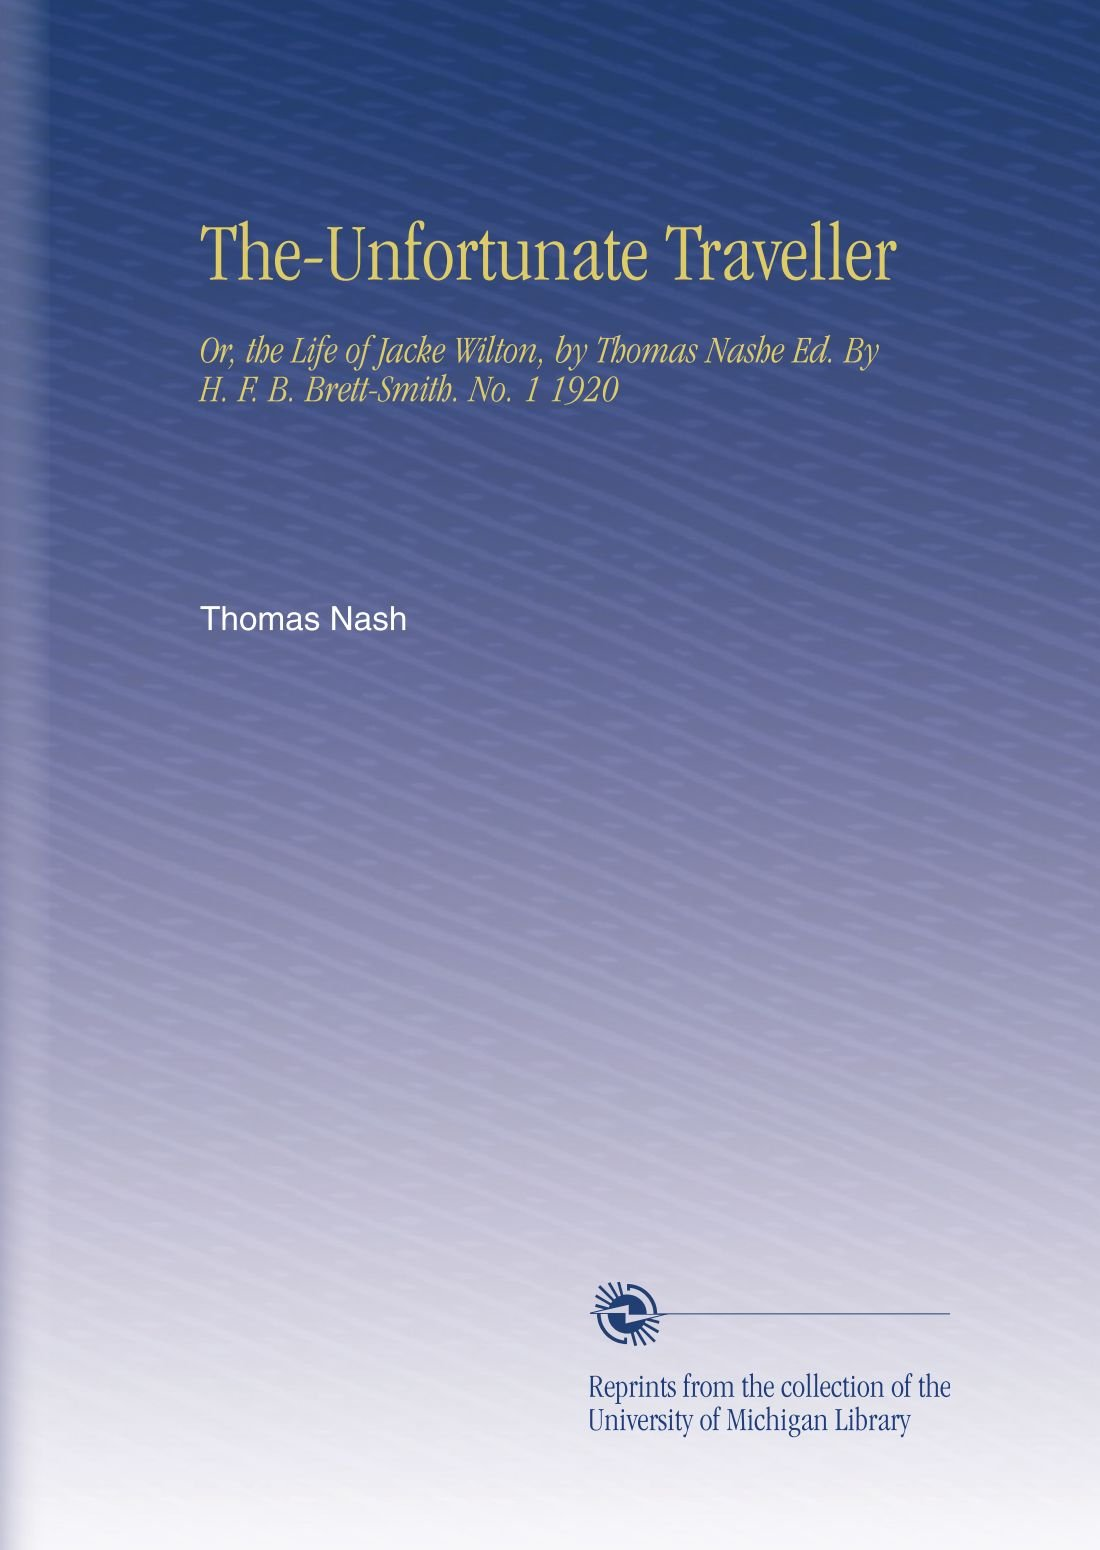 The-Unfortunate Traveller: Or, the Life of Jacke Wilton, by Thomas Nashe Ed. By H. F. B. Brett-Smith. No.  1 1920 Text fb2 ebook